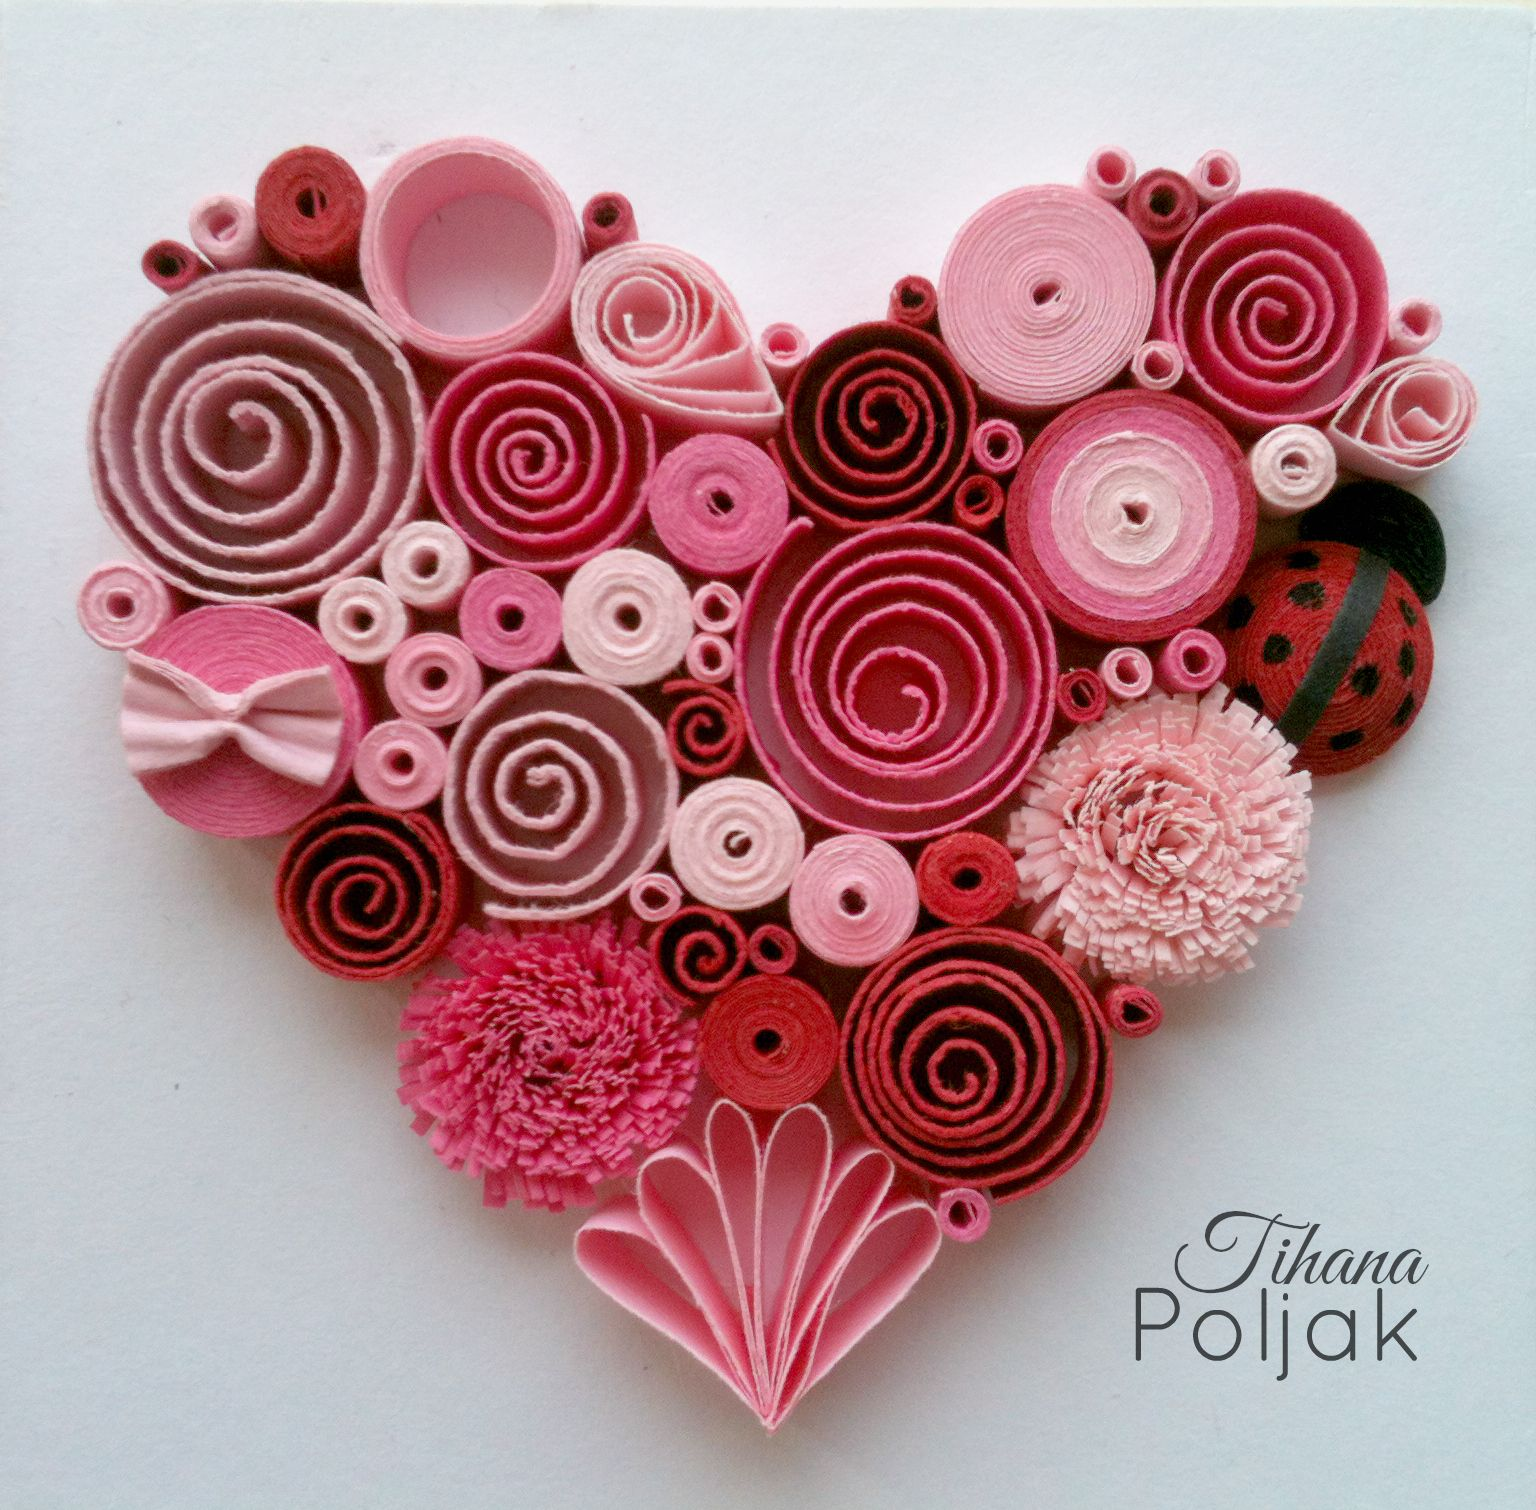 Quilled heart quilling red rose heart love quilling for Best quilling designs